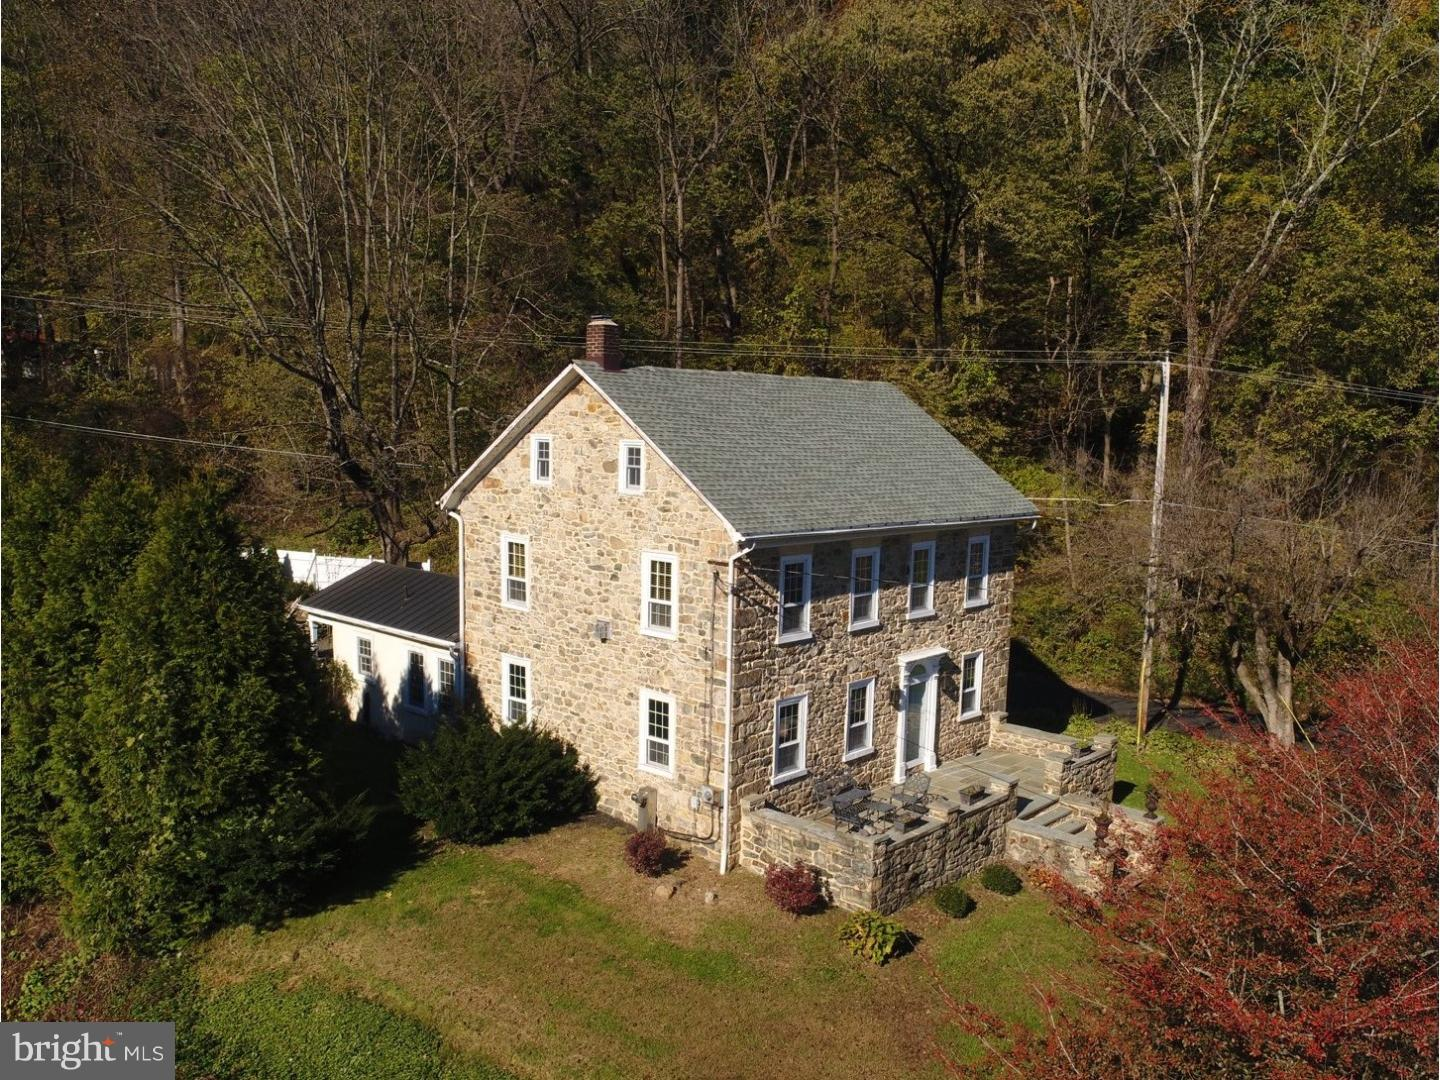 107 EASTON ROAD, RIEGELSVILLE, PA 18077